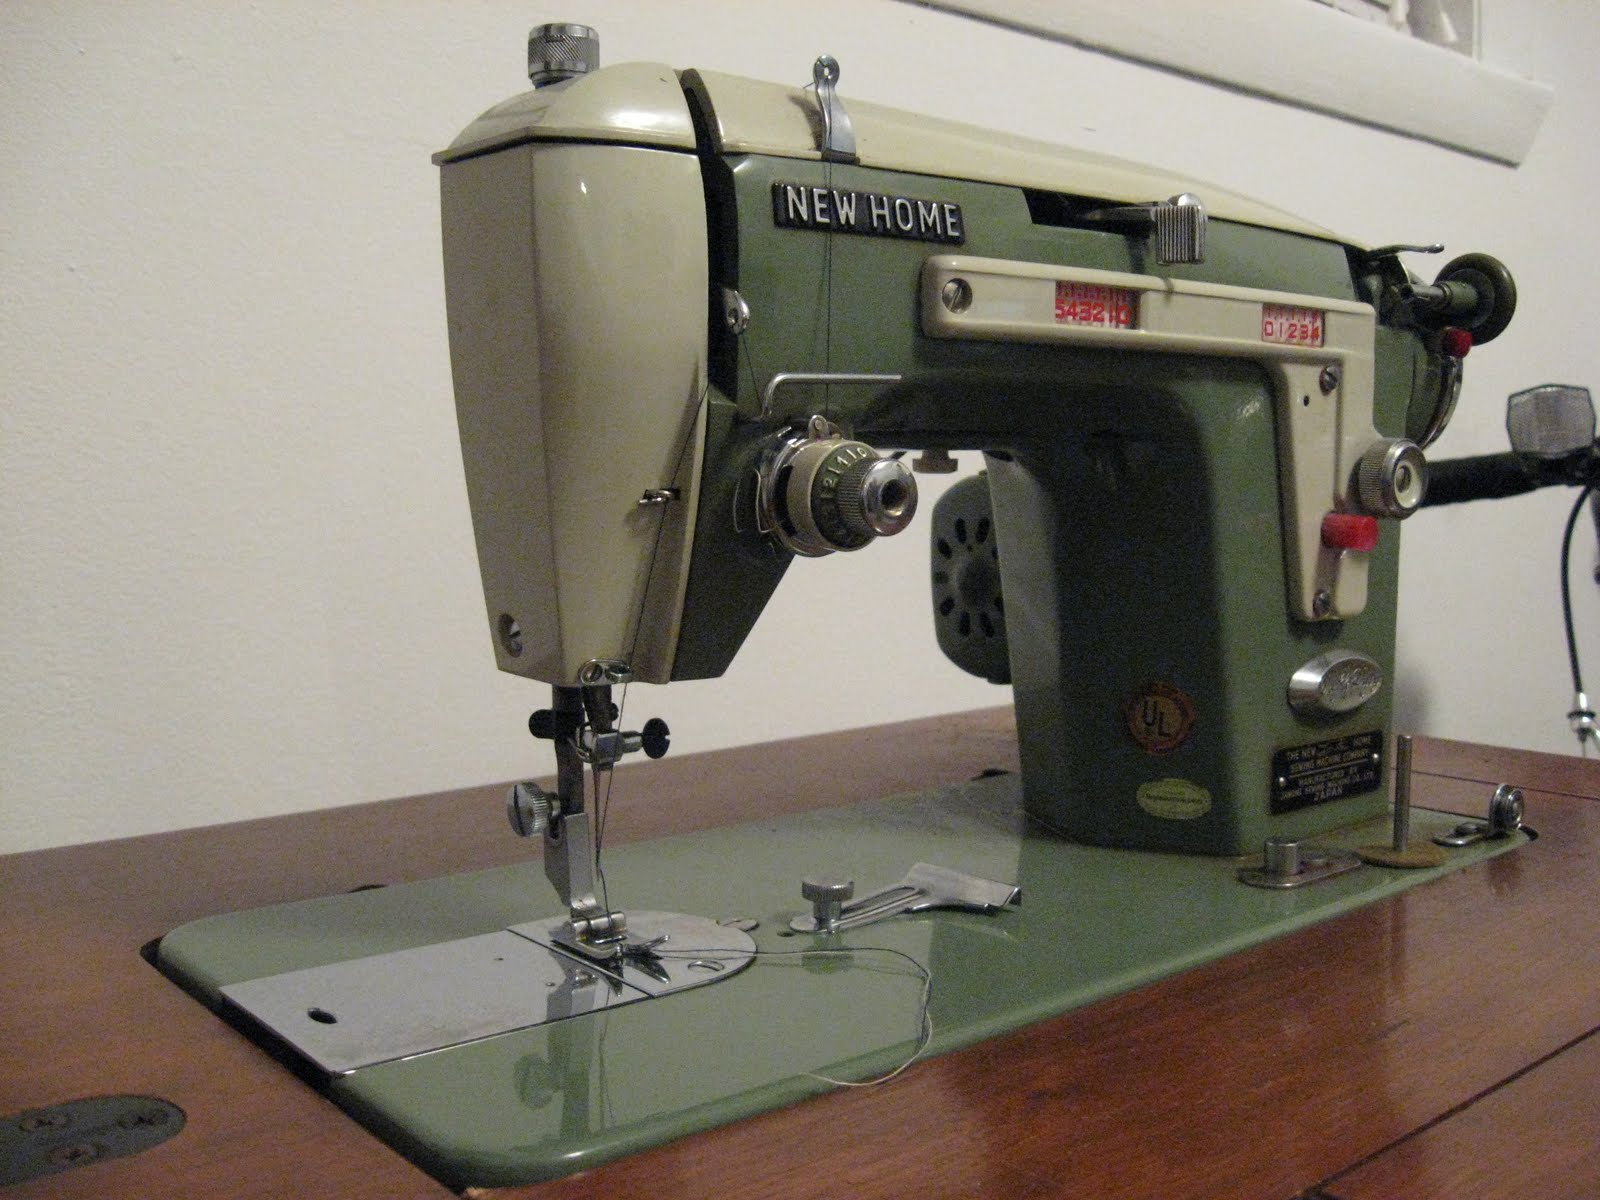 Loophole in my Dreaming: New Home Sewing Machine 532